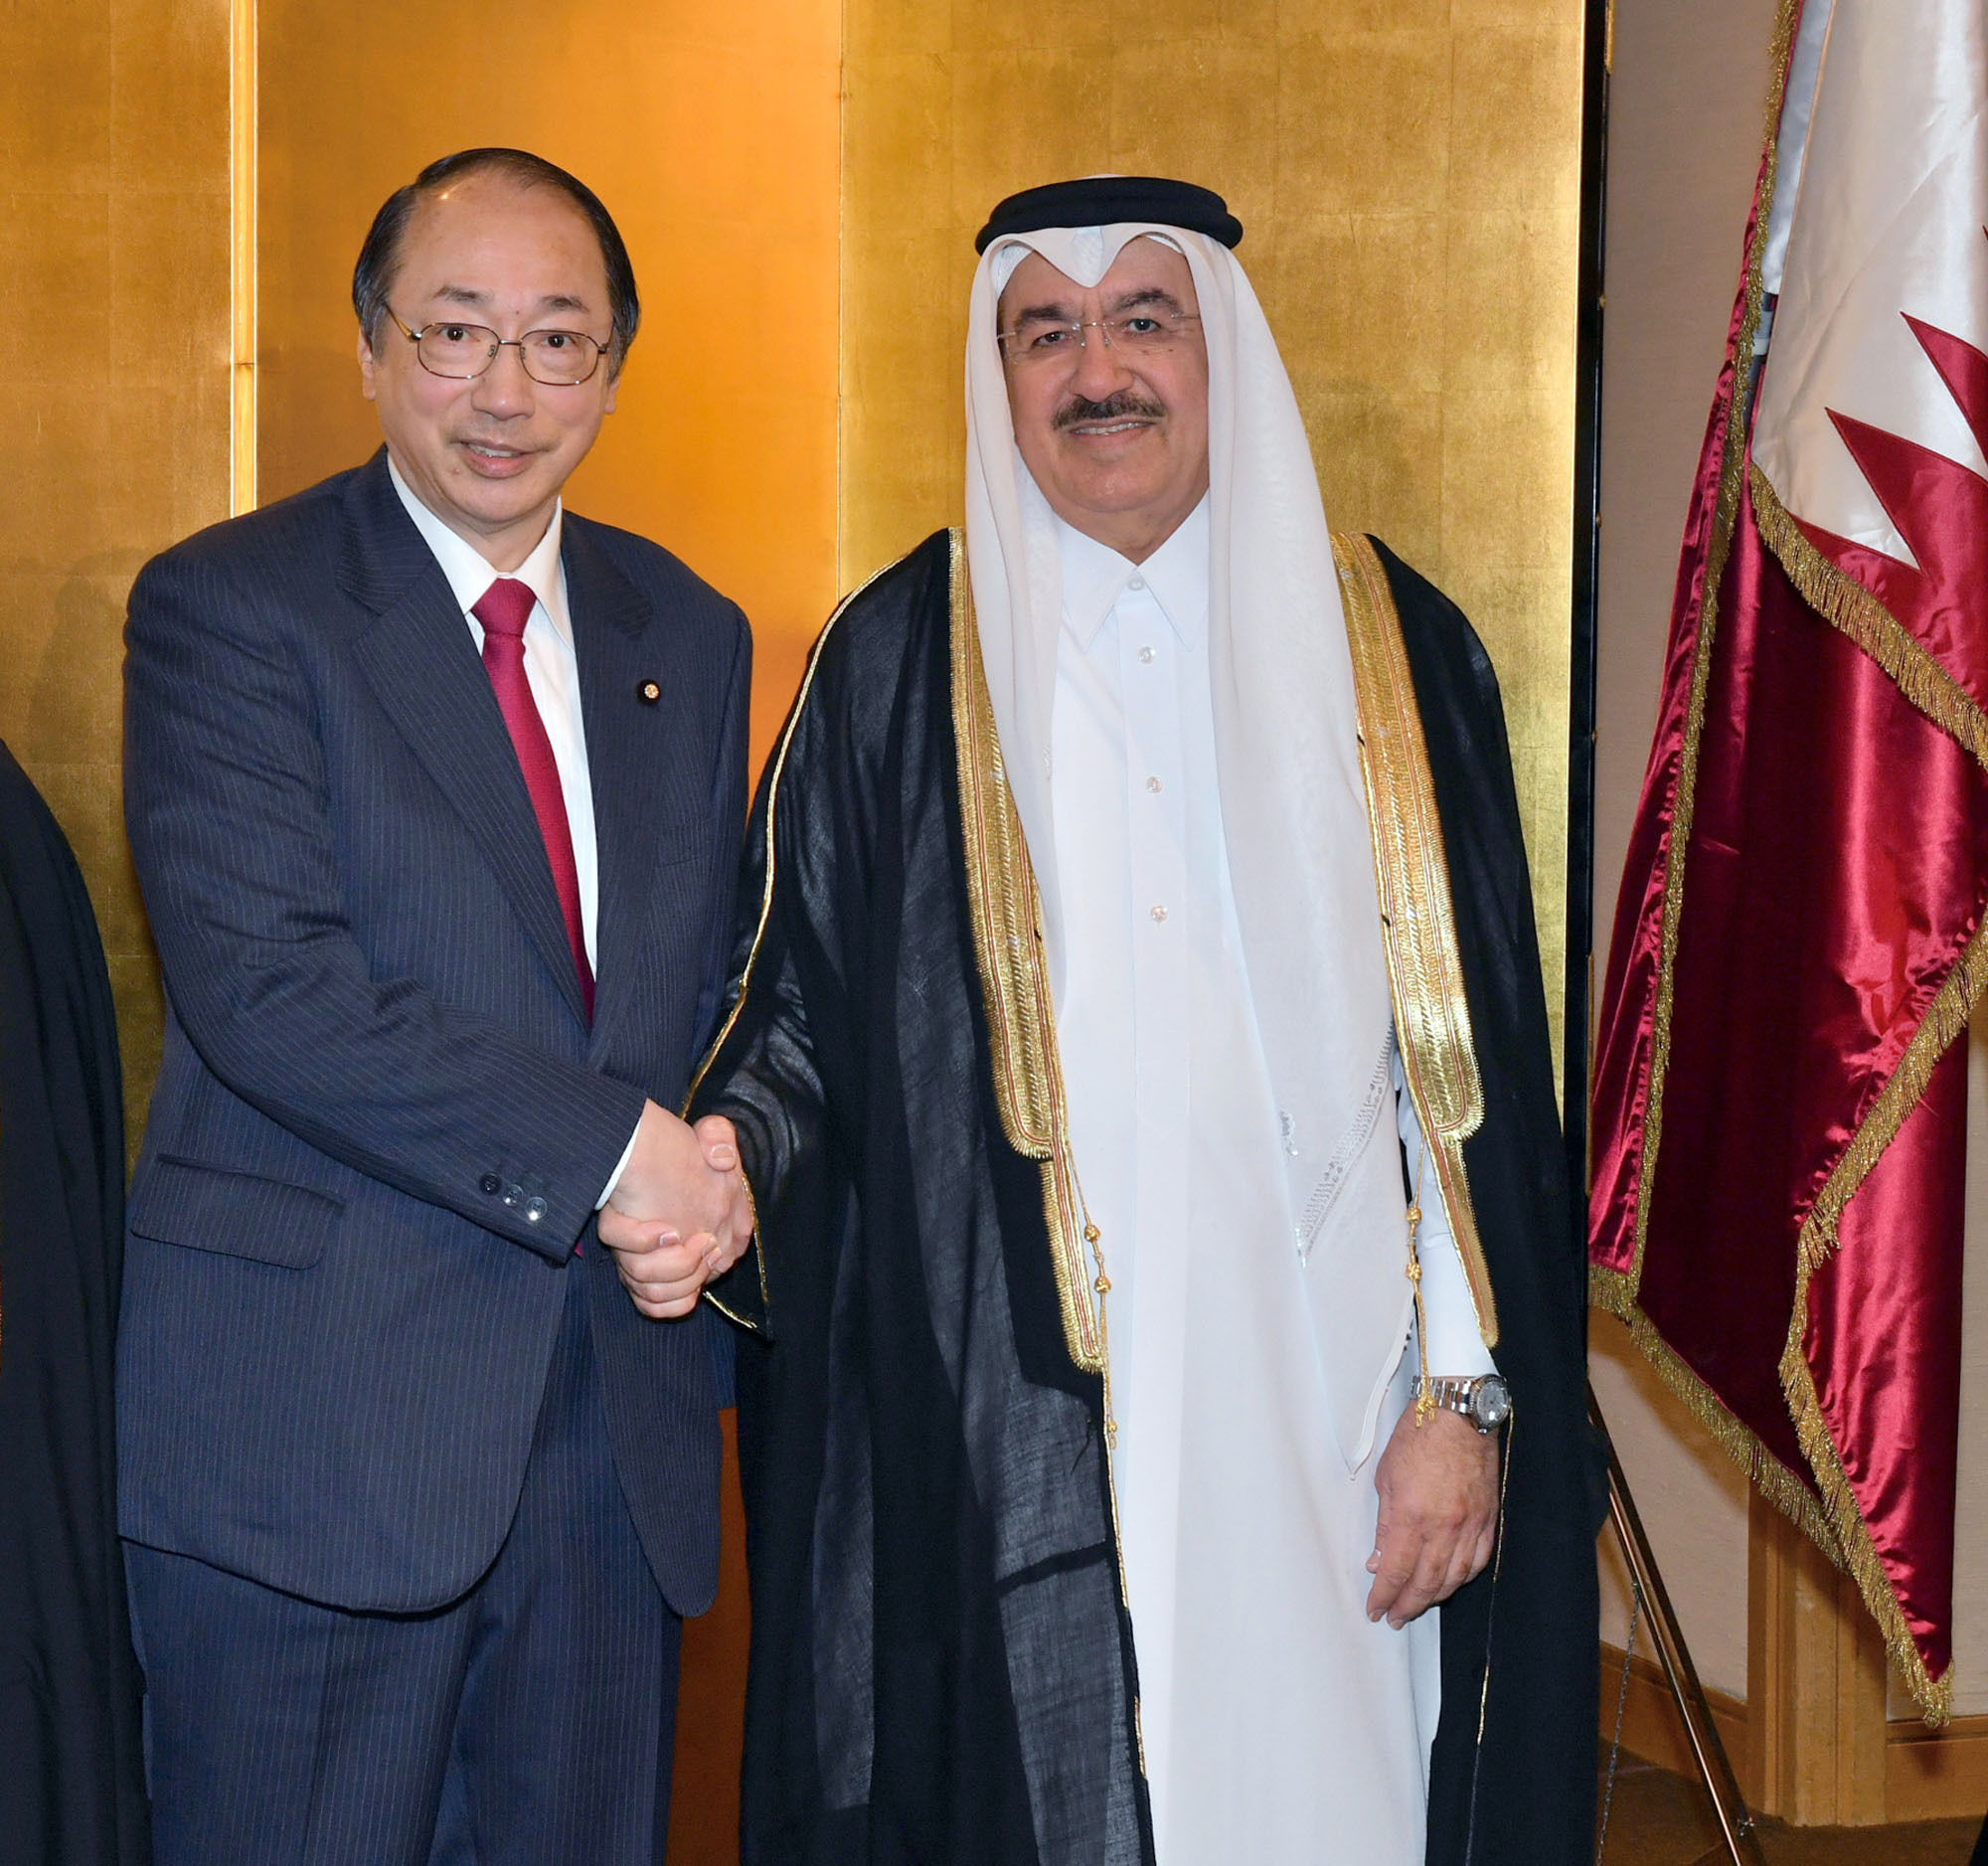 Qatar Ambassador Yousef Mohamed Bilal (right) welcomes Environment Minister Masaharu Nakagawa during a reception to celebrate the Qatar's national day at Imperial Hotel on Dec. 13. |   YOSHIAKI MIURA